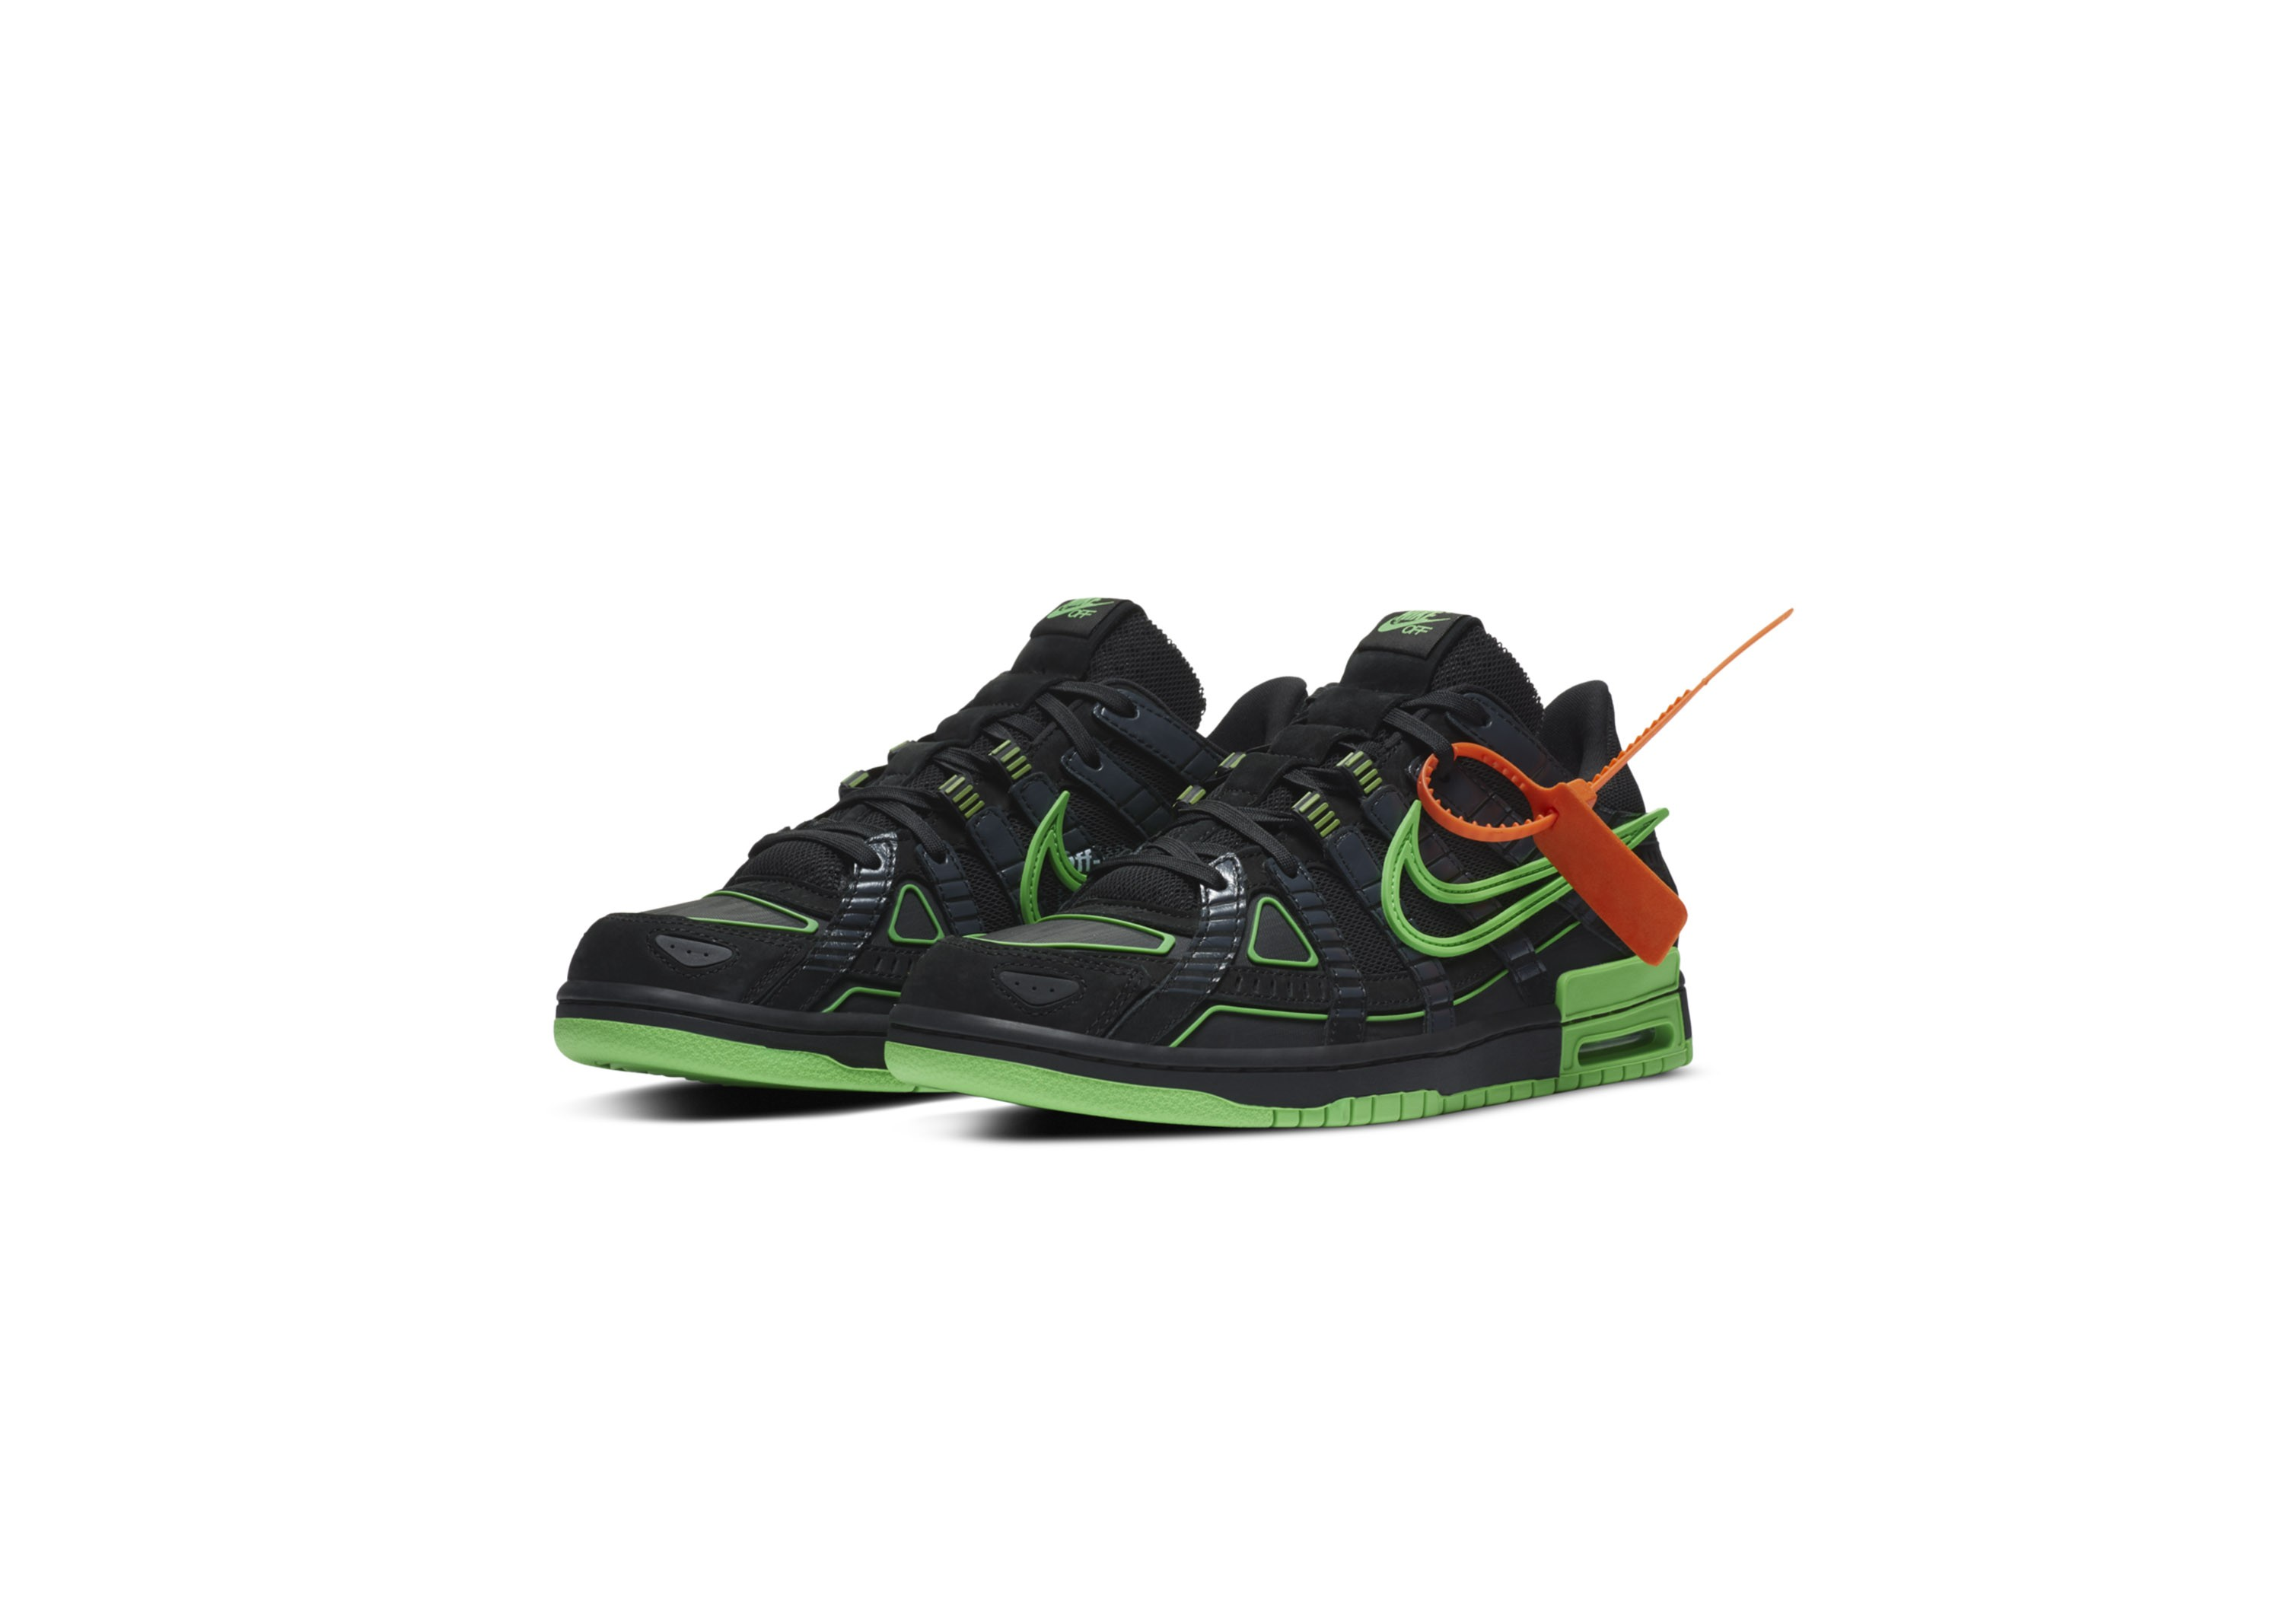 NIKE_OW_RUBBERDUNK__0001_CU6015-001_194273318_D_E_1X1_native_1600